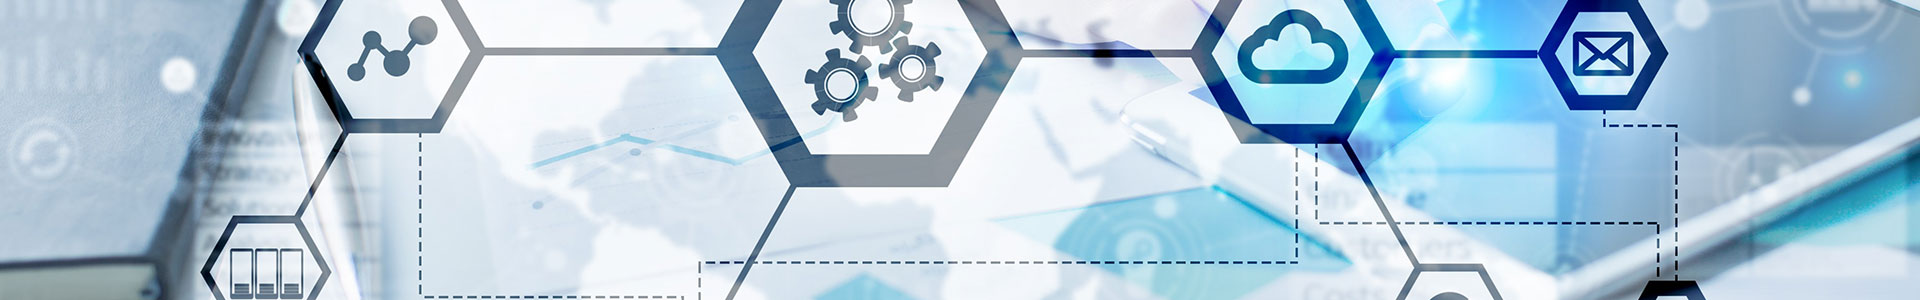 IT Operations Automation Banner